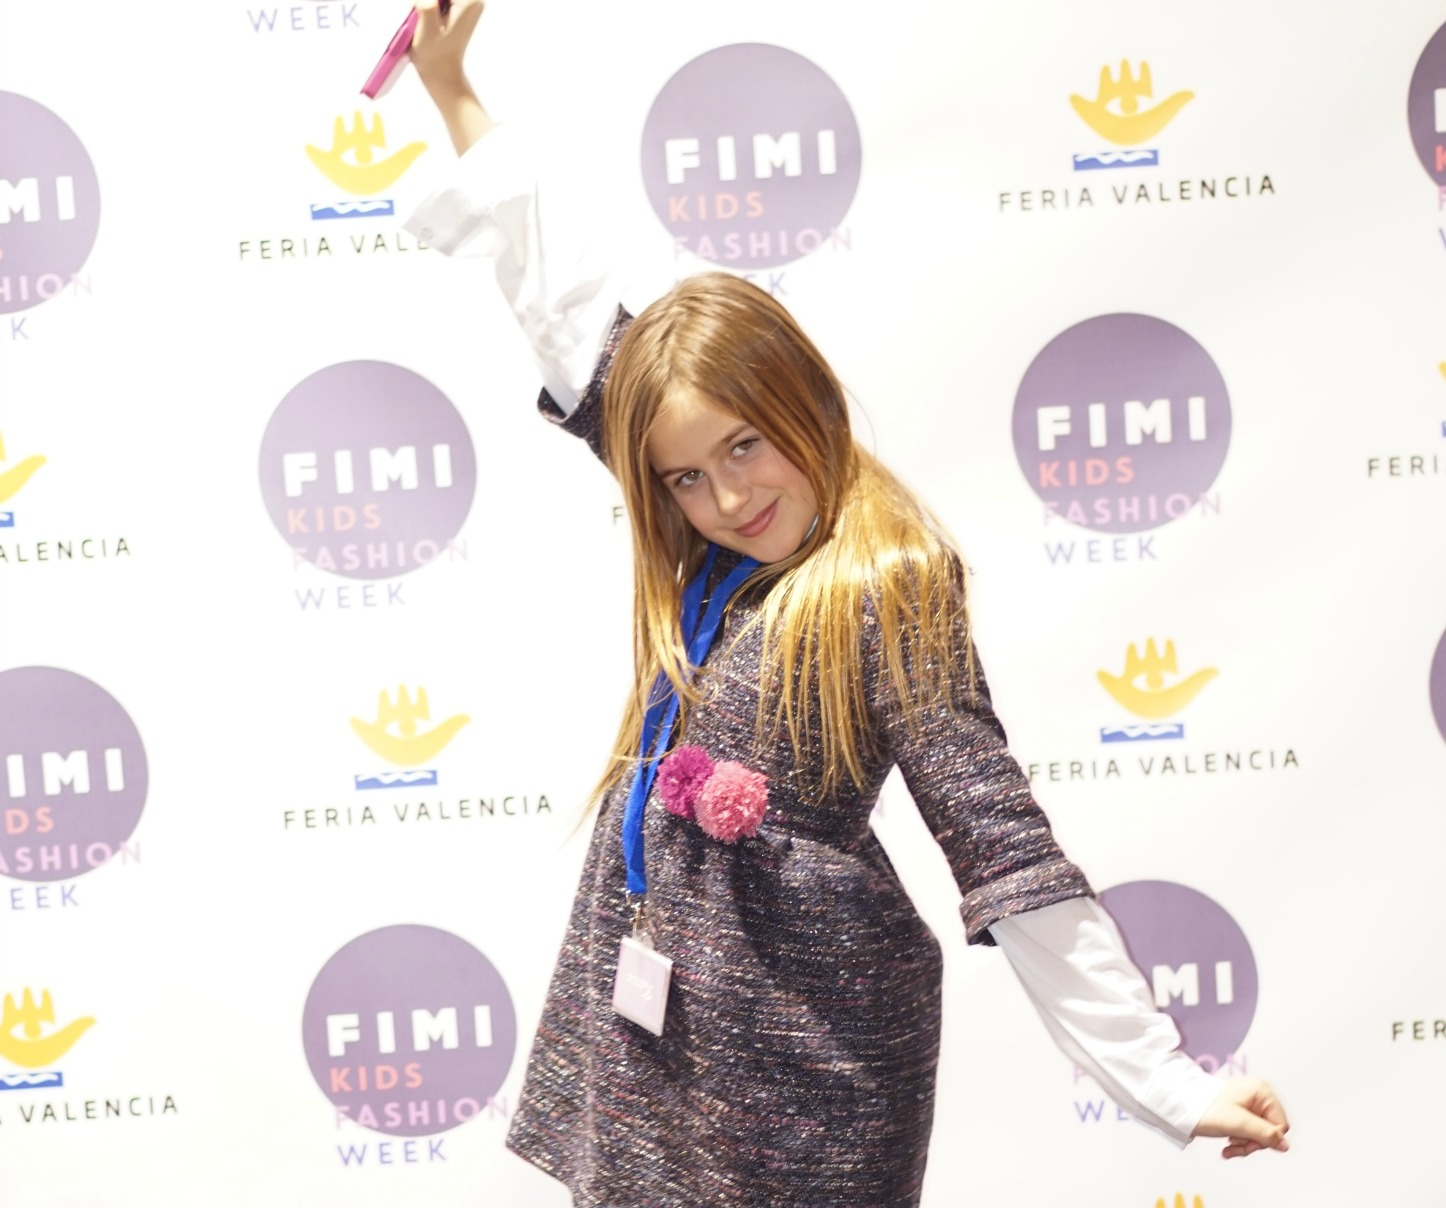 Fimi Moda Infantil 100% Made in Spain